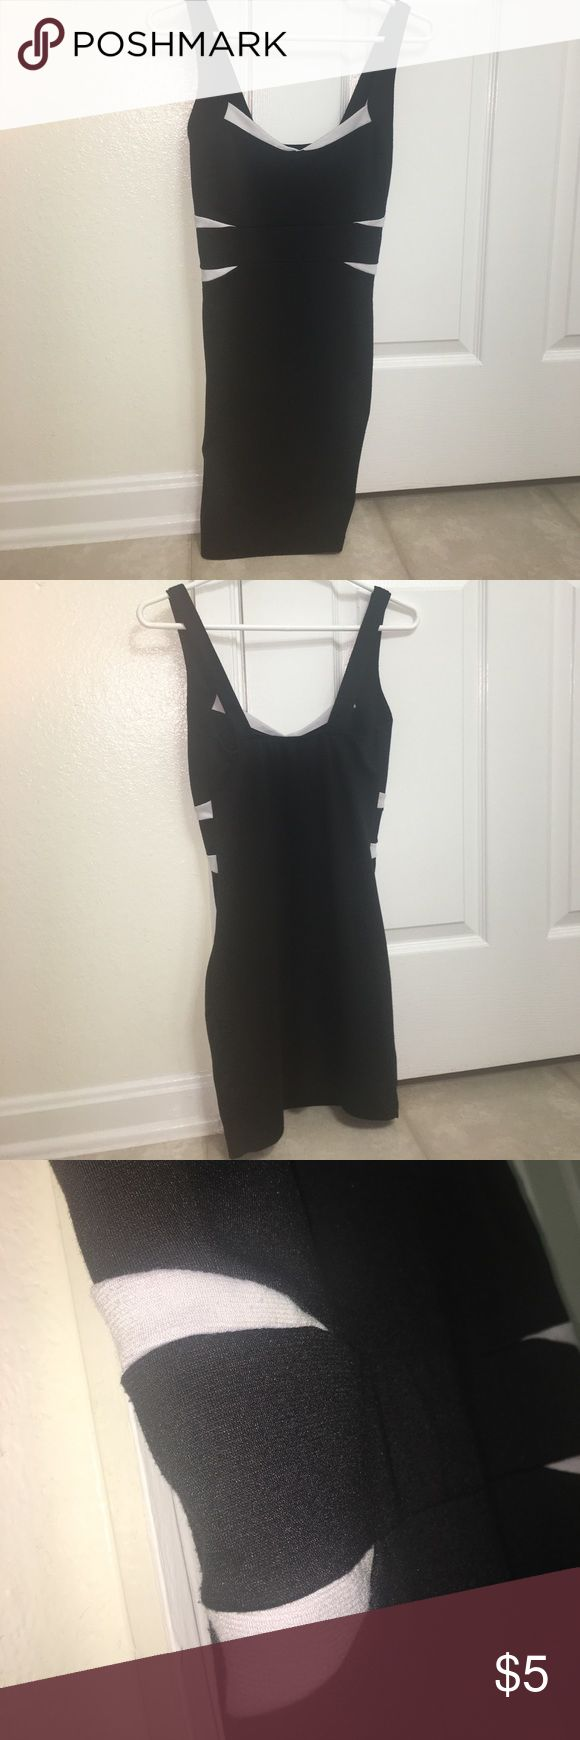 Black & White Club Dress Short black dress with white accents! Super stretchy material for a great body hugging look! Forever 21 Dresses Mini